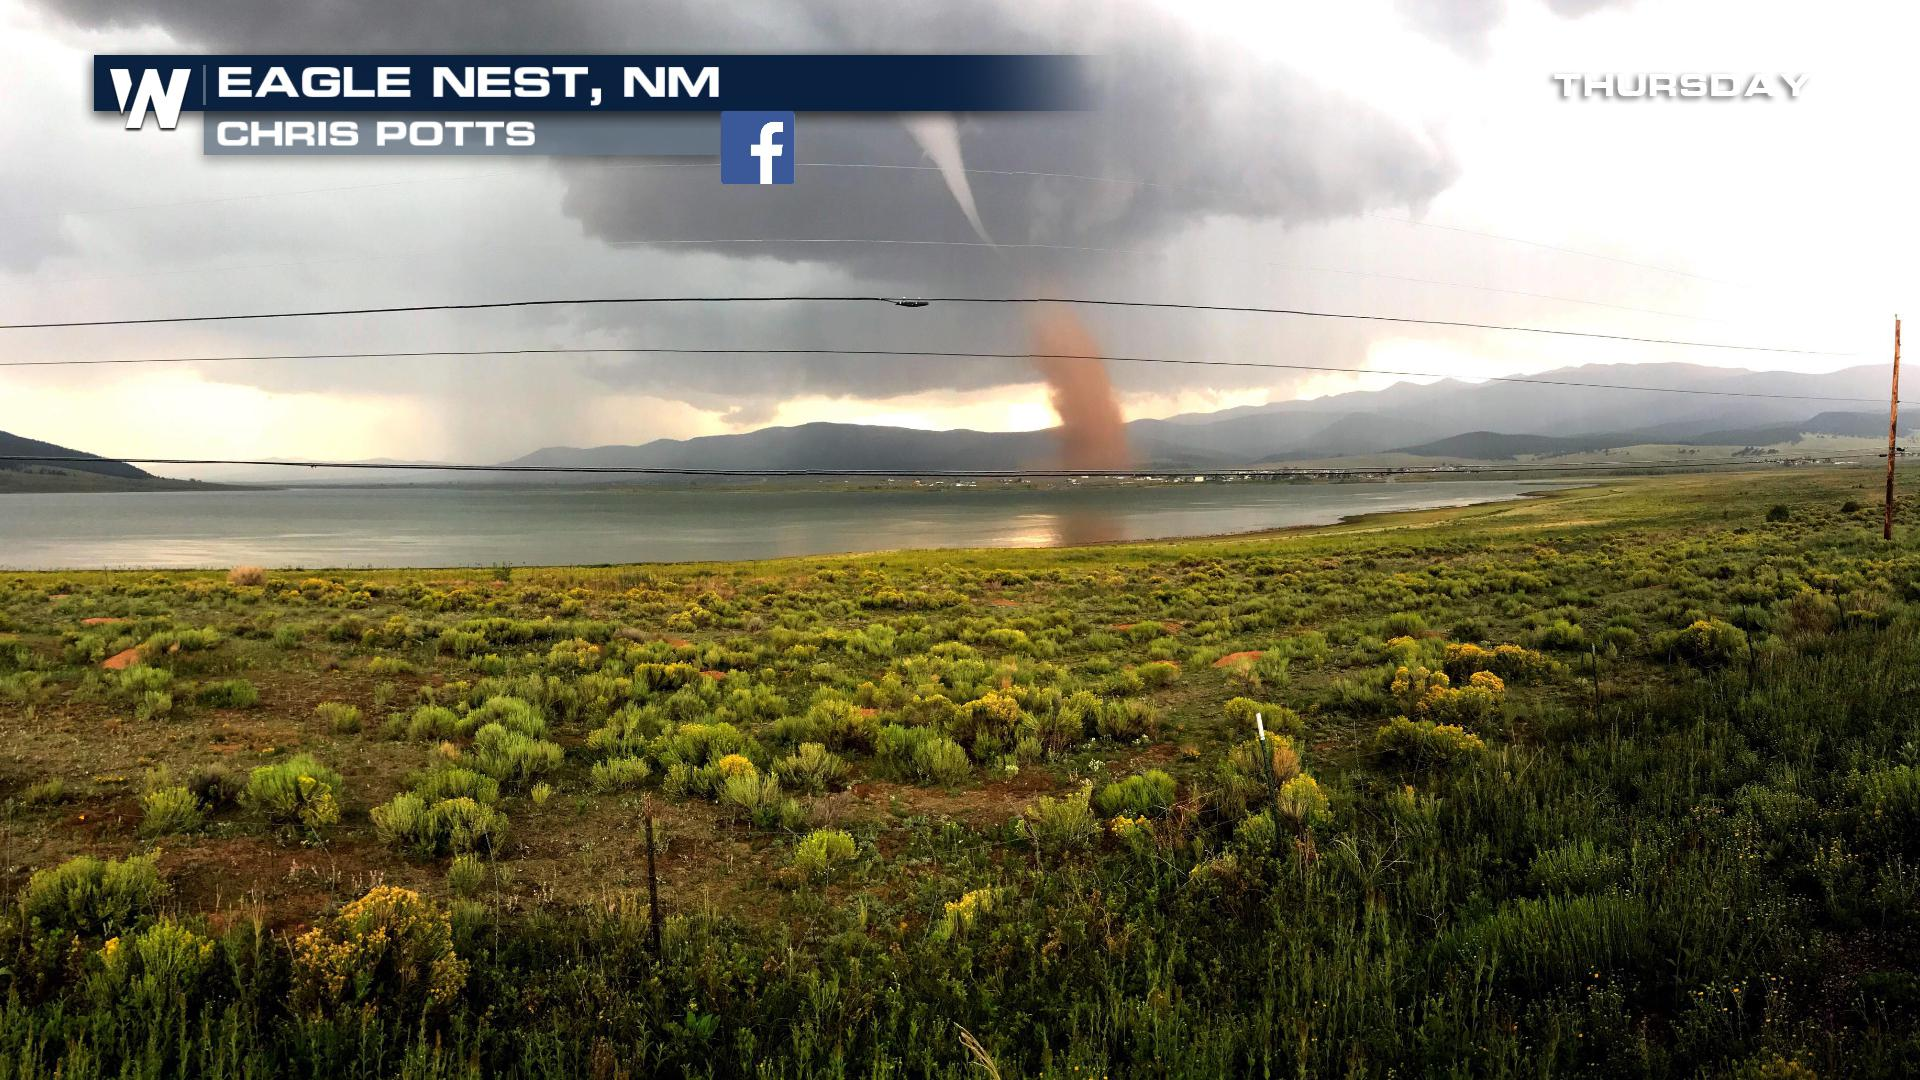 A Tornado in New Mexico, Really?